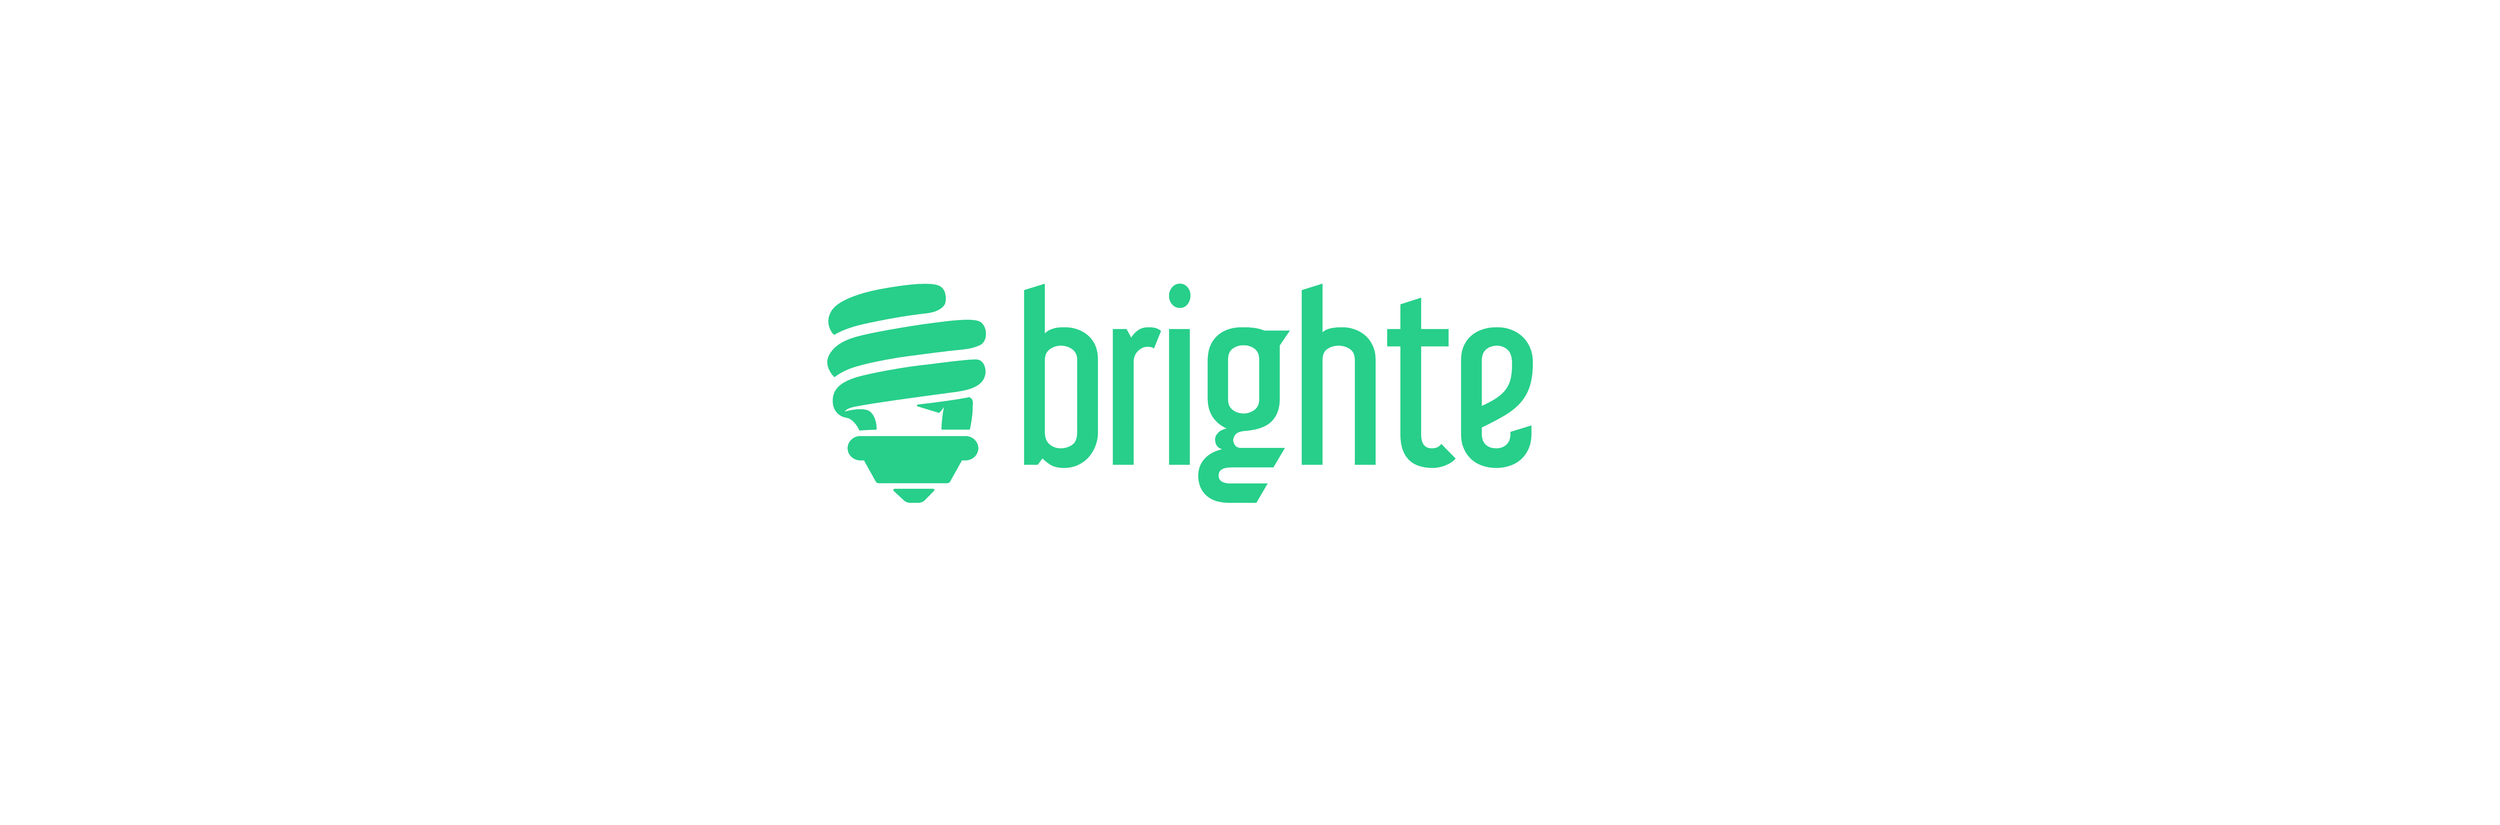 brighte1.png